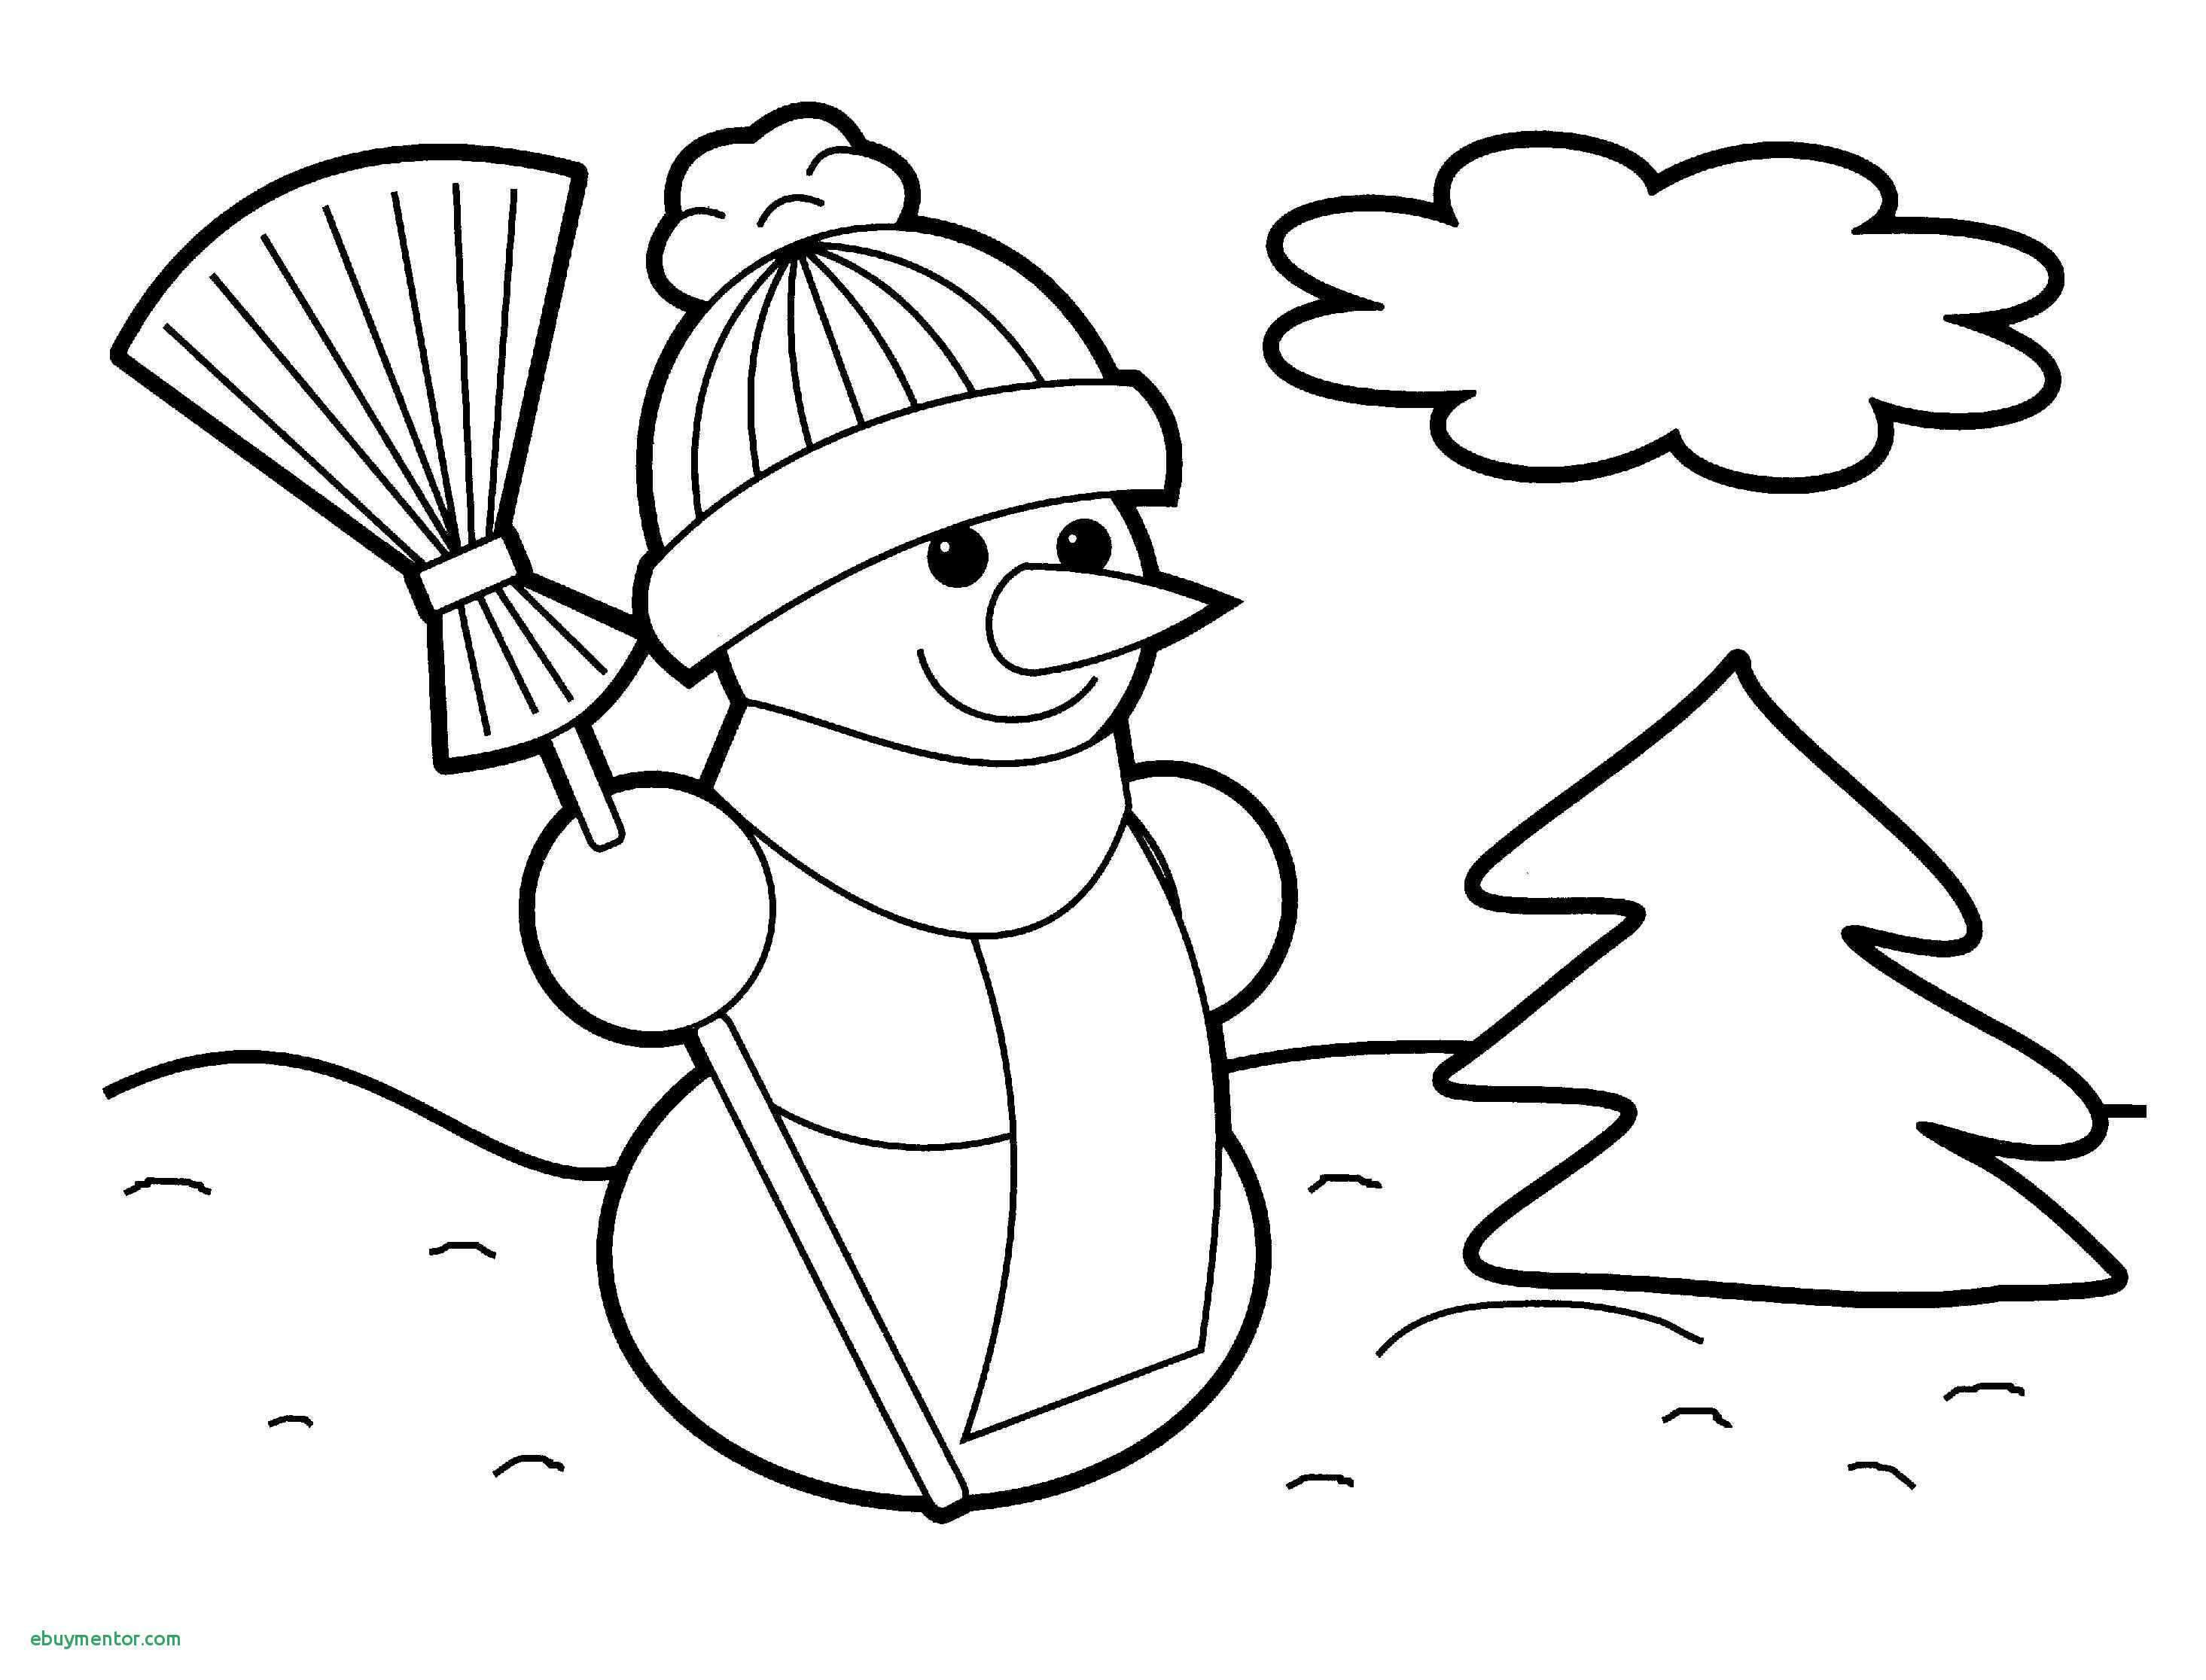 Christmas Coloring Pages For Upper Elementary With Mrs Claus 47